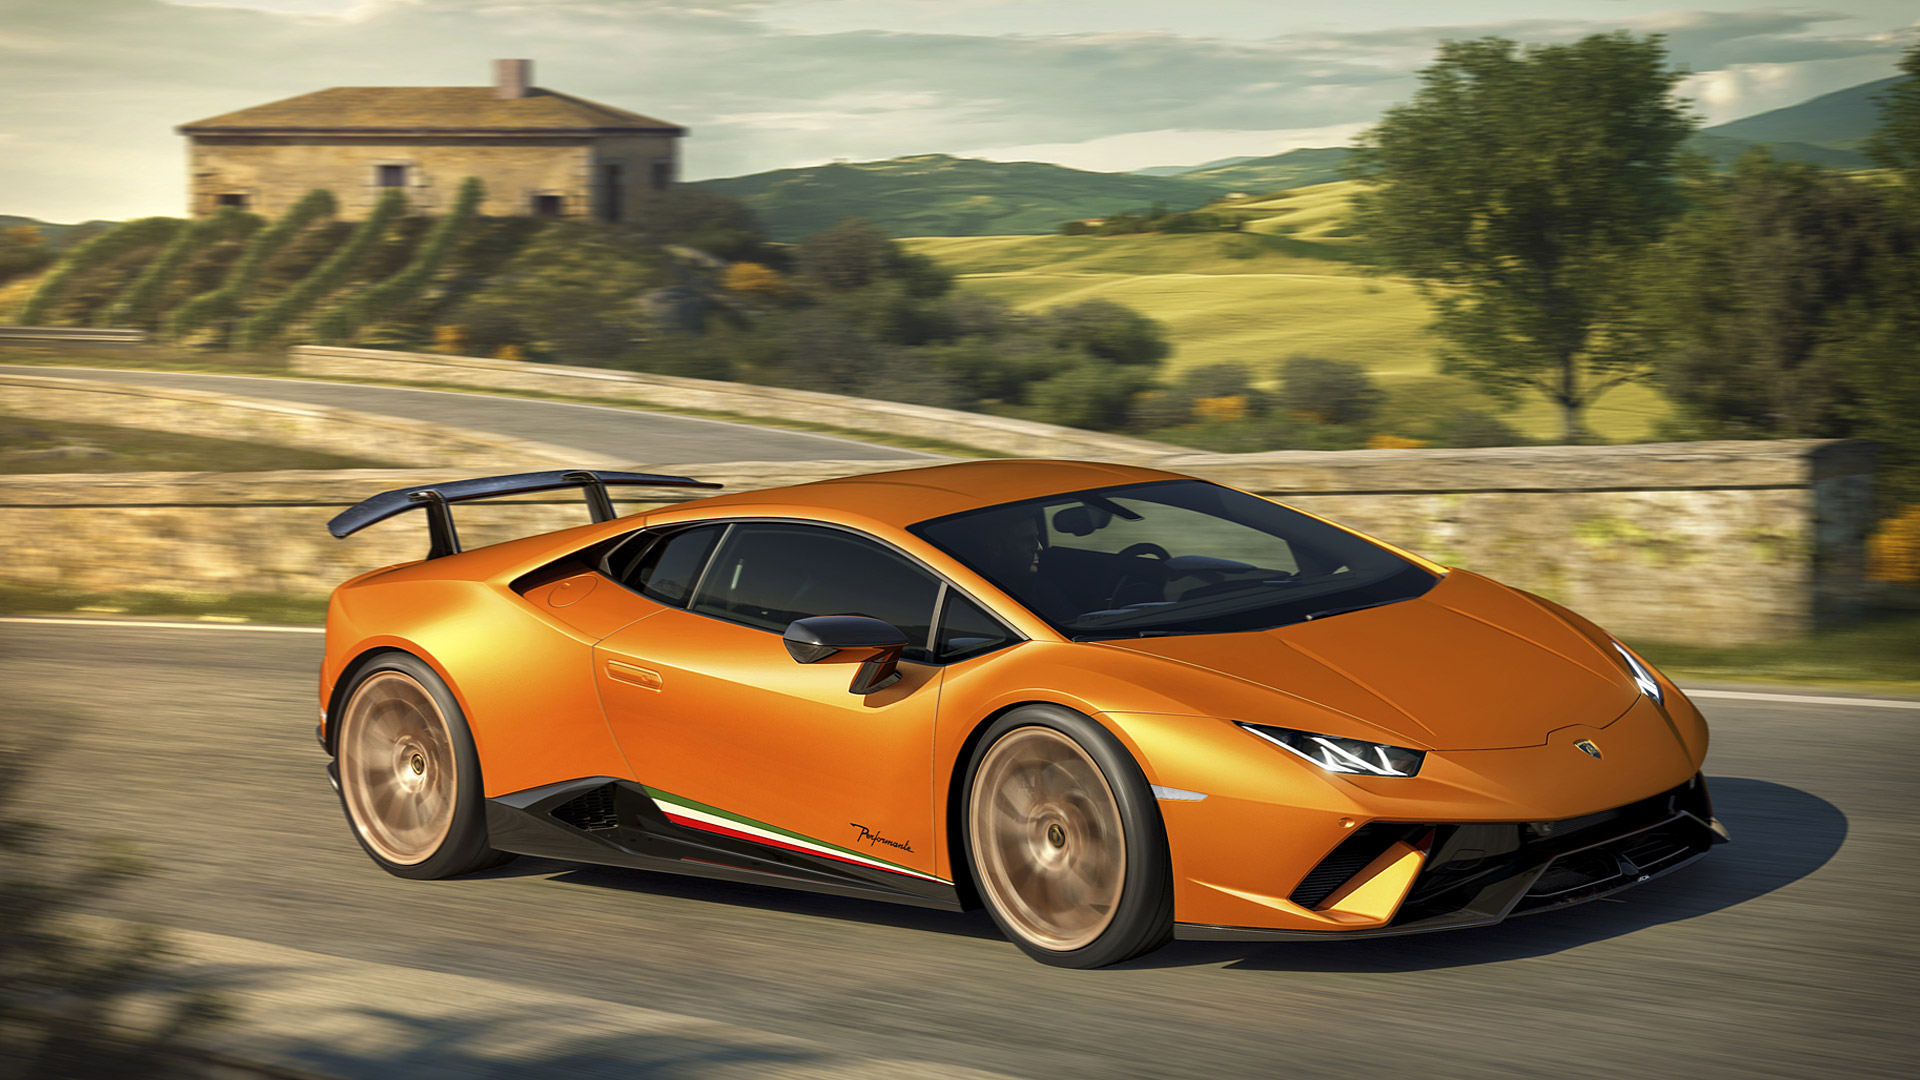 2018 Lamborghini Huracan Performante Wallpapers HD Images 1920x1080